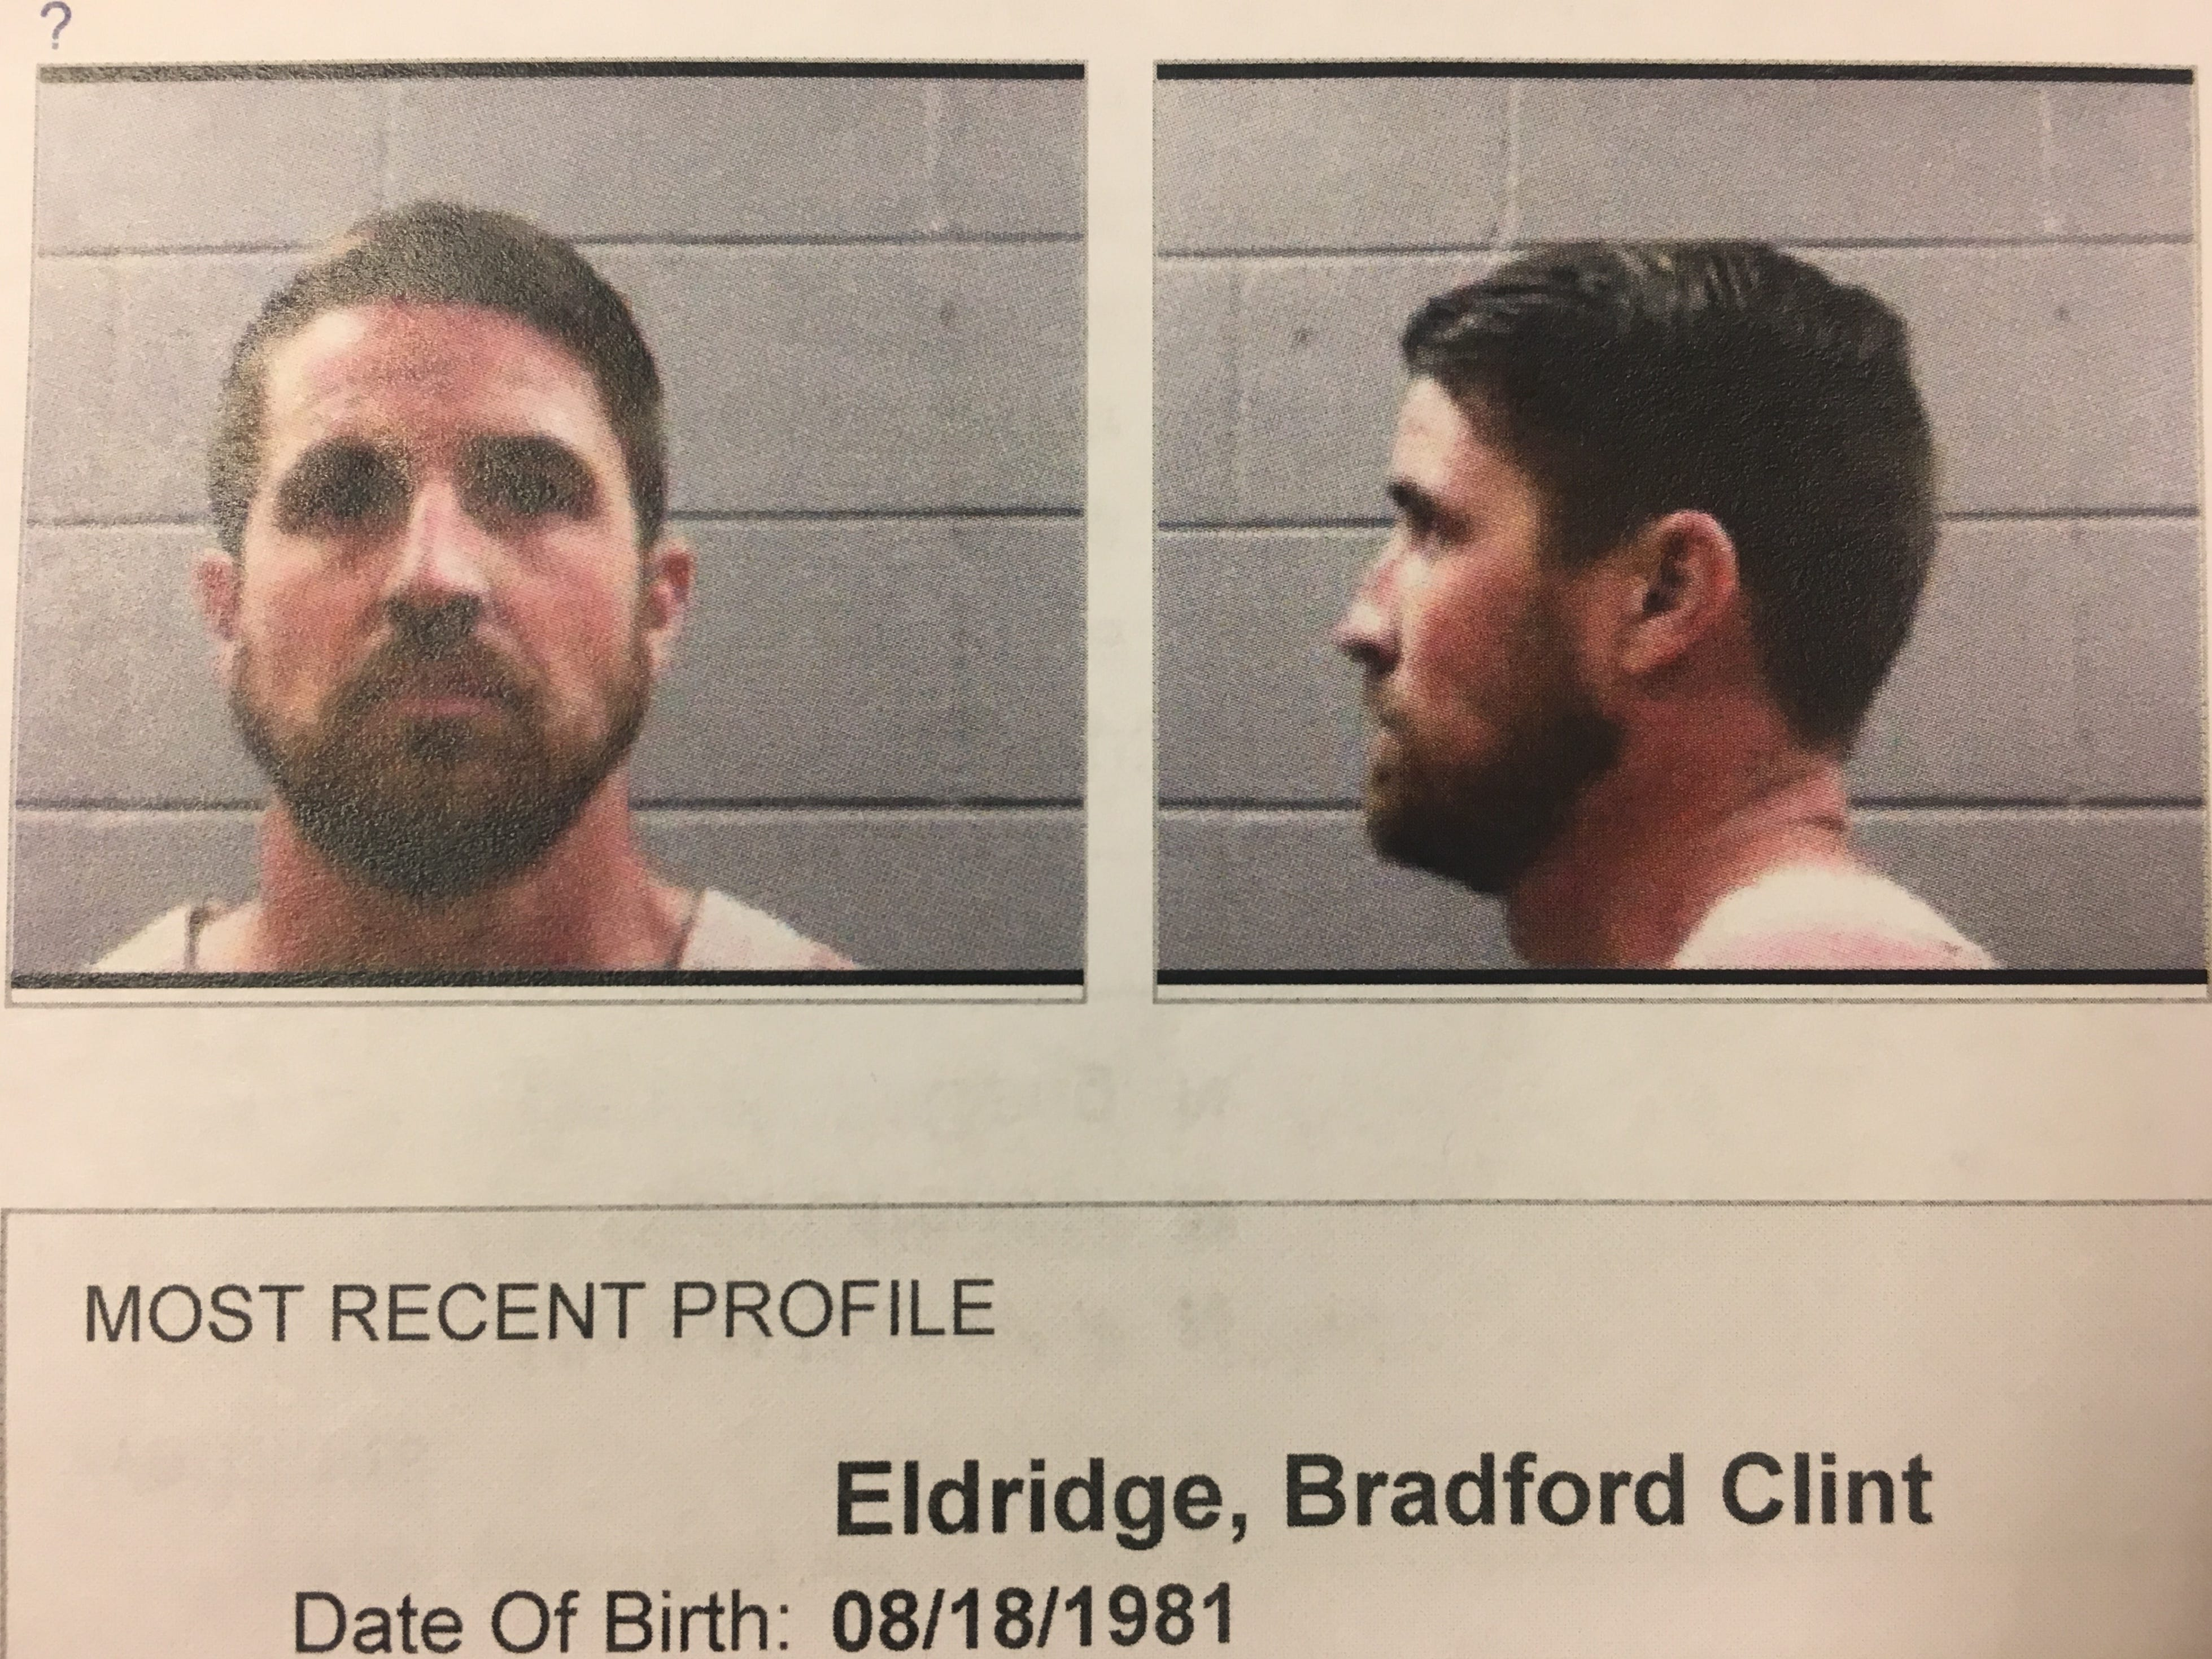 Bradford Clint Eldridge